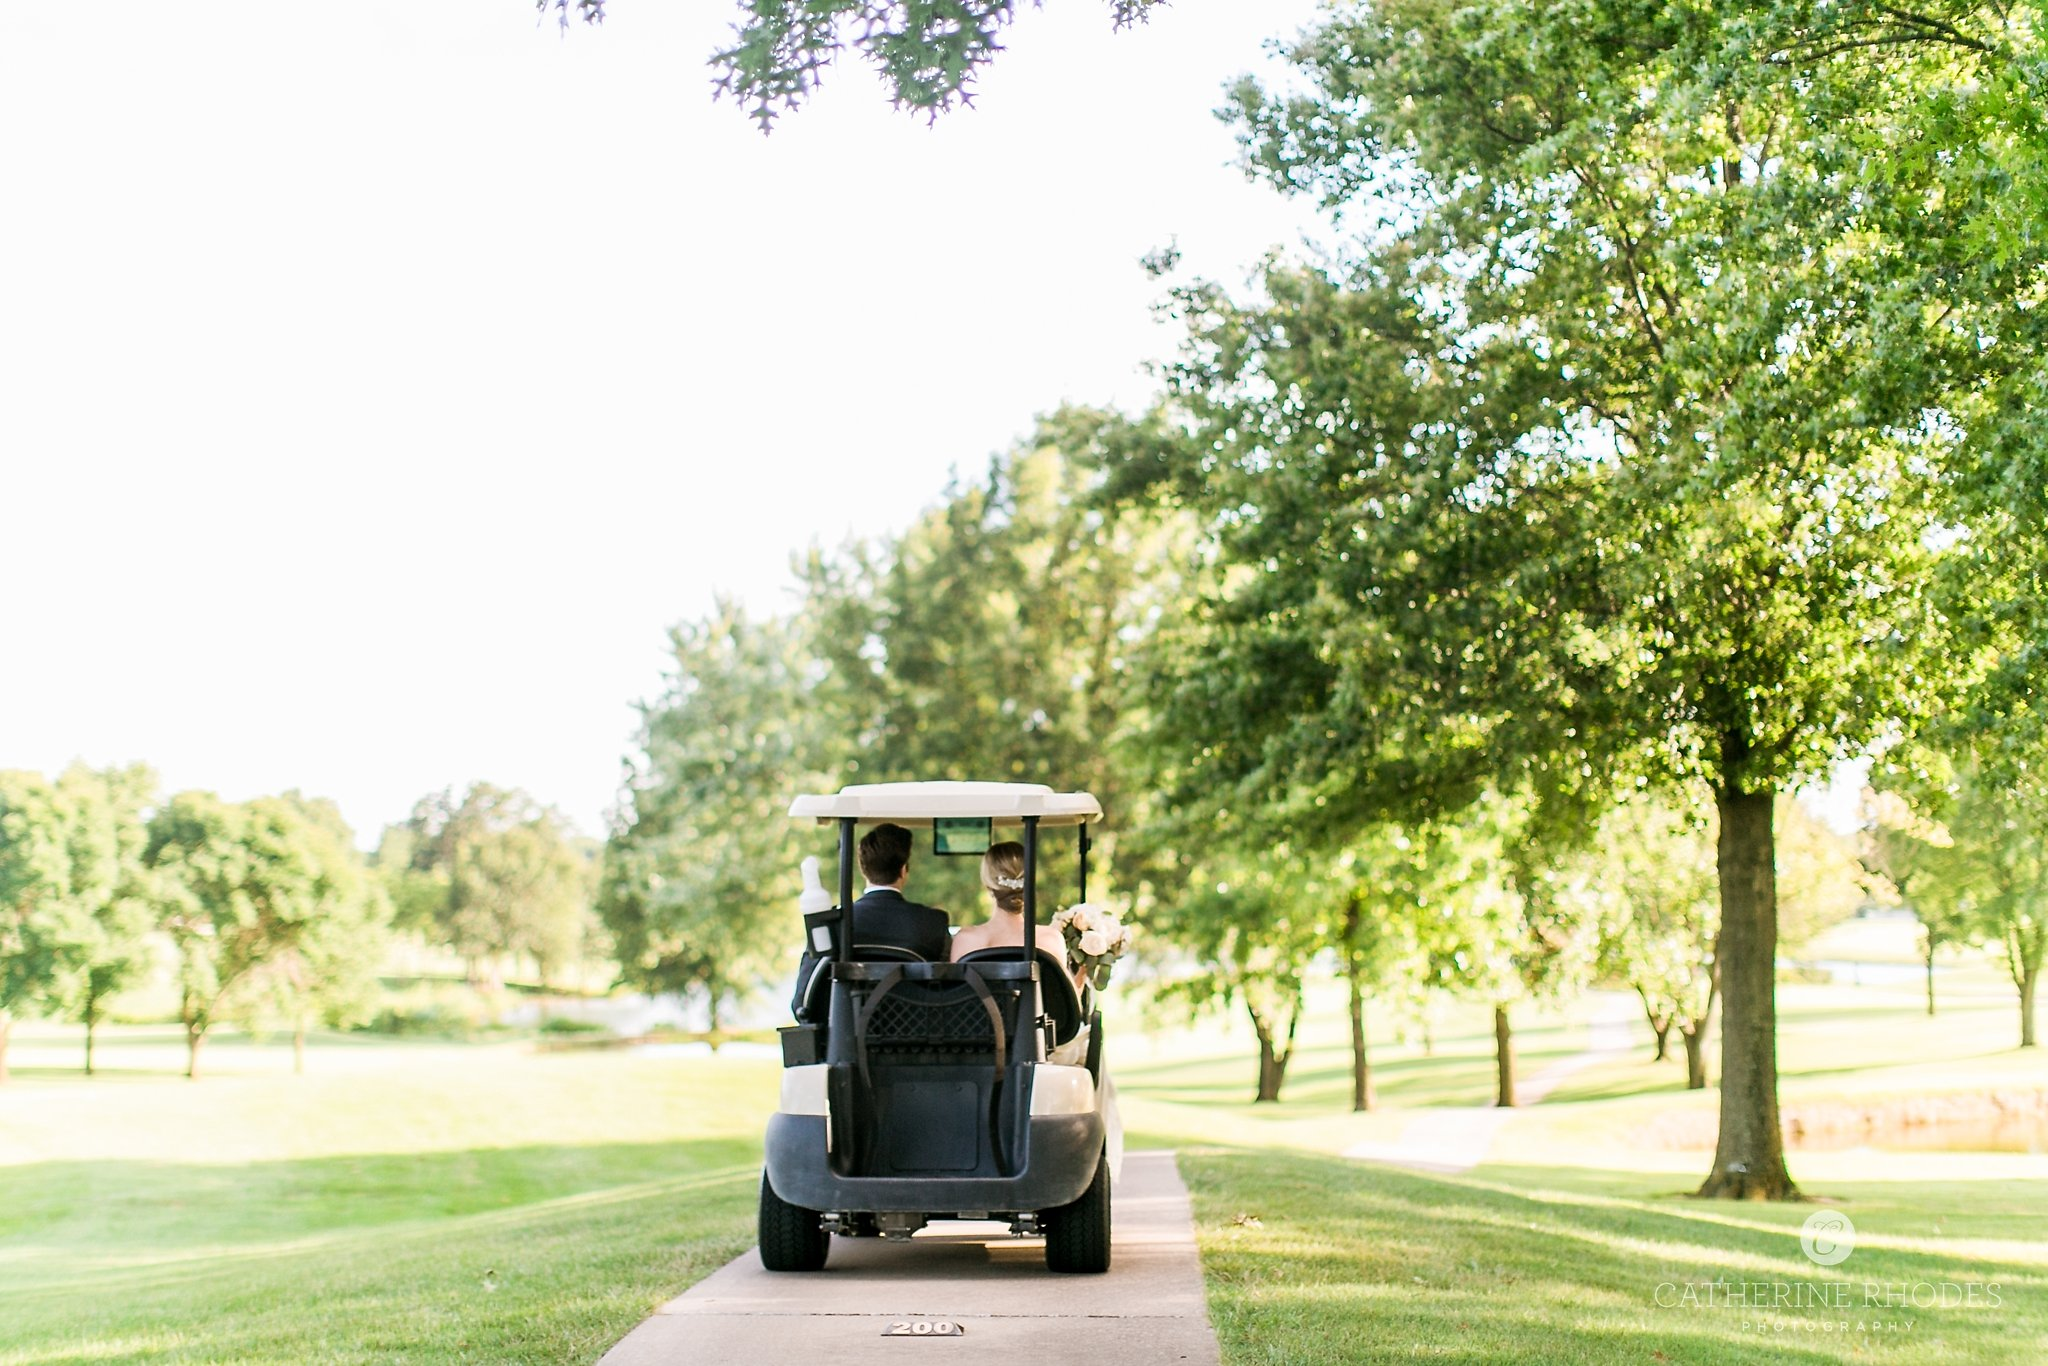 CountryClubofMissouriWedding_ColumbiaMissouriWeddingPhotographer_SaraKevin_CatherineRhodesPhotography-2364-Edit-1.jpg